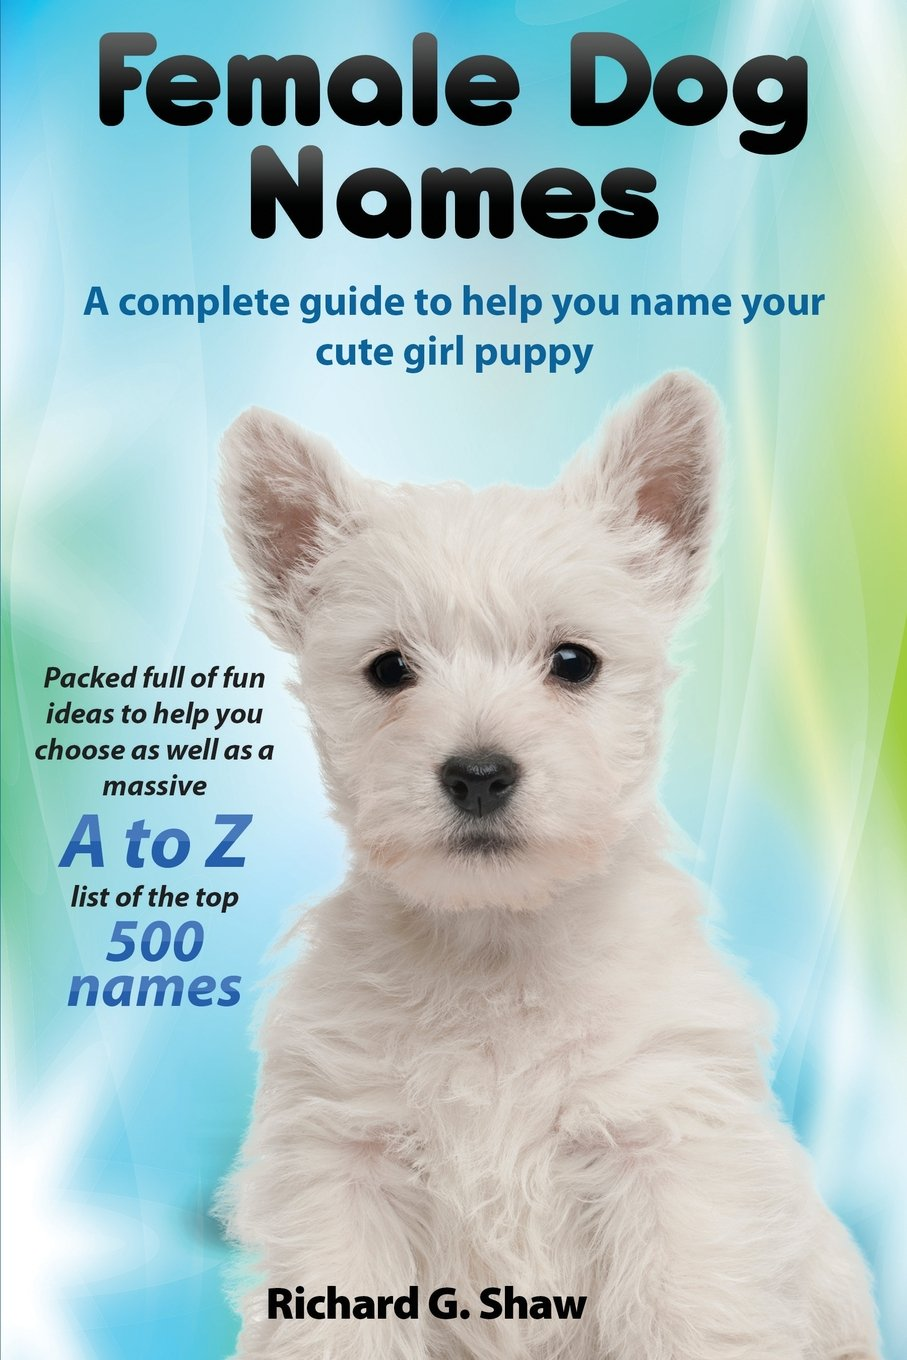 Female Dog Names A Complete Guide To Help You Name Your Cute Girl Puppy Packed full of fun methods and ideas to help you as well as a massive A to Z list of the best names. pdf